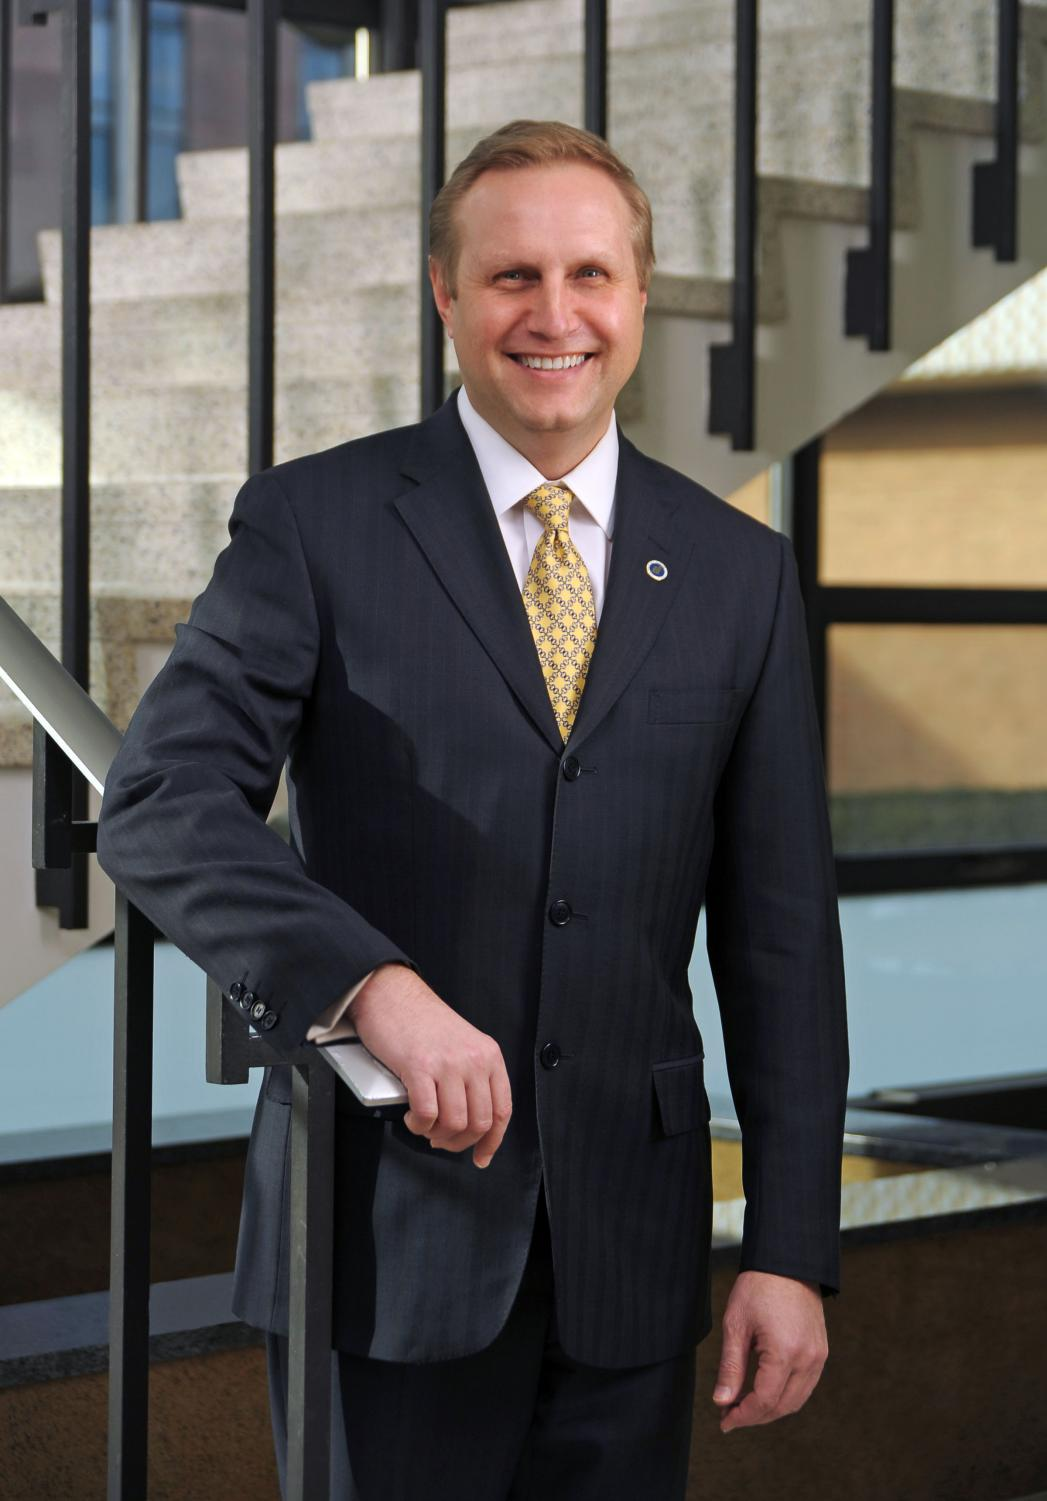 "[The picture of Helldobler smiling] ""It has been an honor to serve both as Provost and Interim President during my tenure here at Northeastern Illinois University,"" Helldobler said in a letter to the University community. ""Together we should be proud of our many accomplishments."""